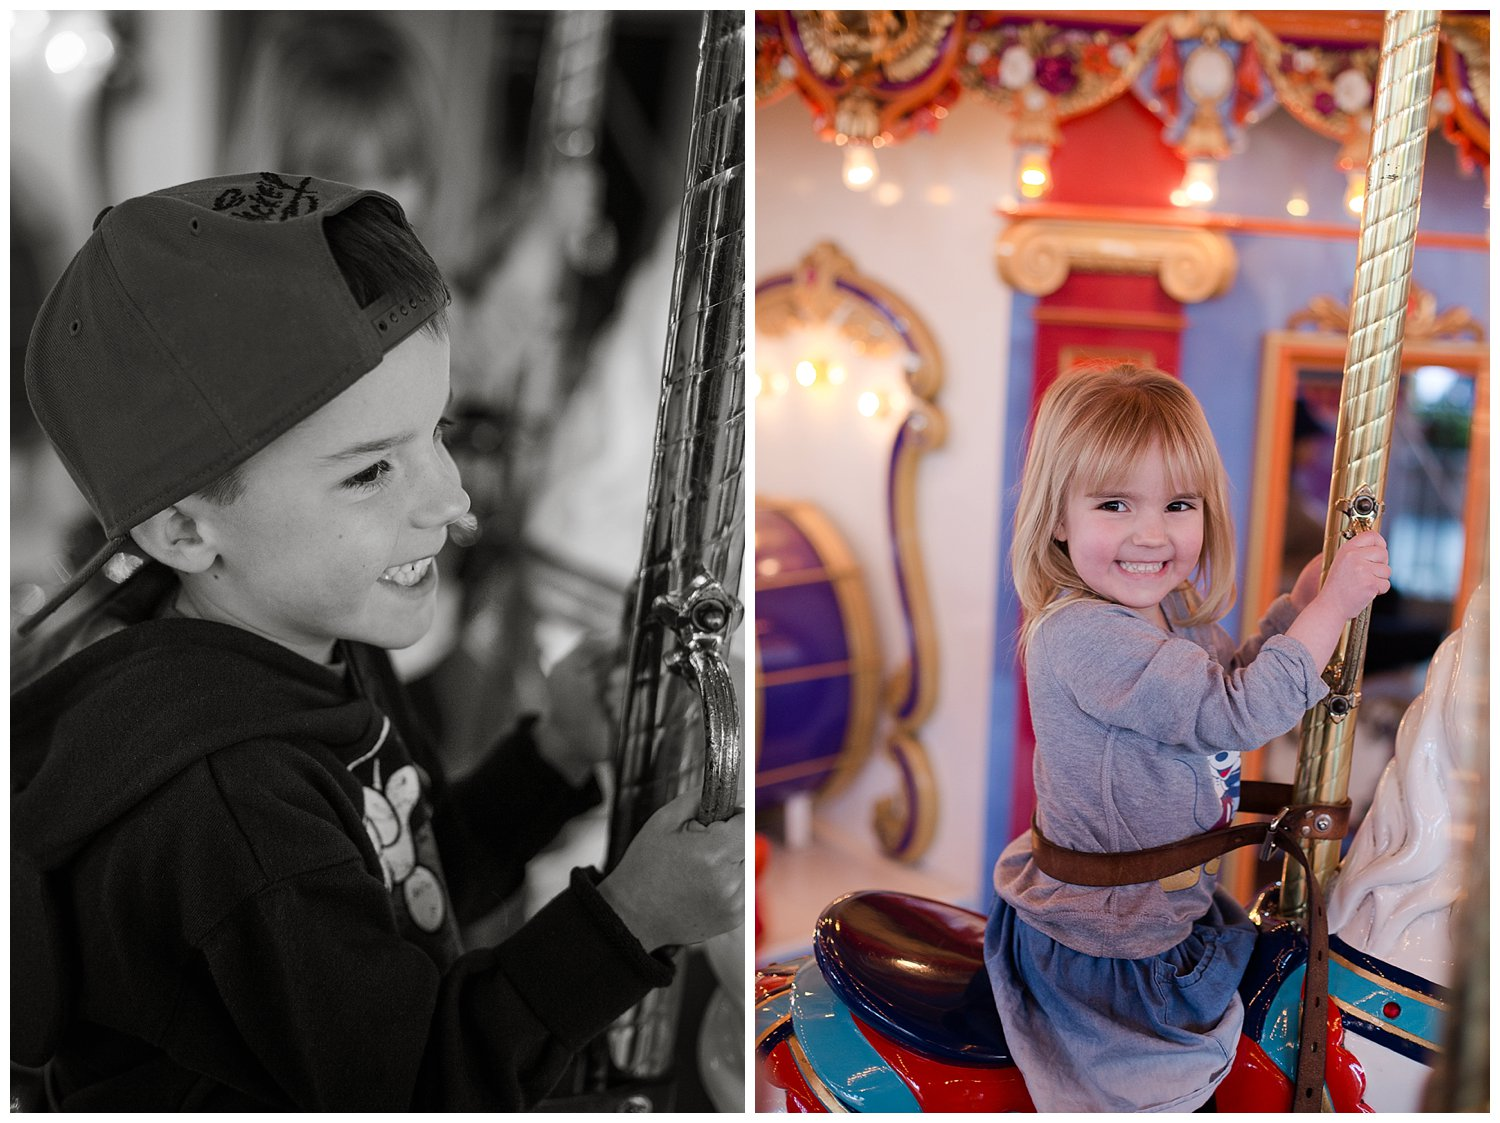 The carousel was another favorite that we were able to do over and over thanks to it's close proximity to the teacups and the short lines.